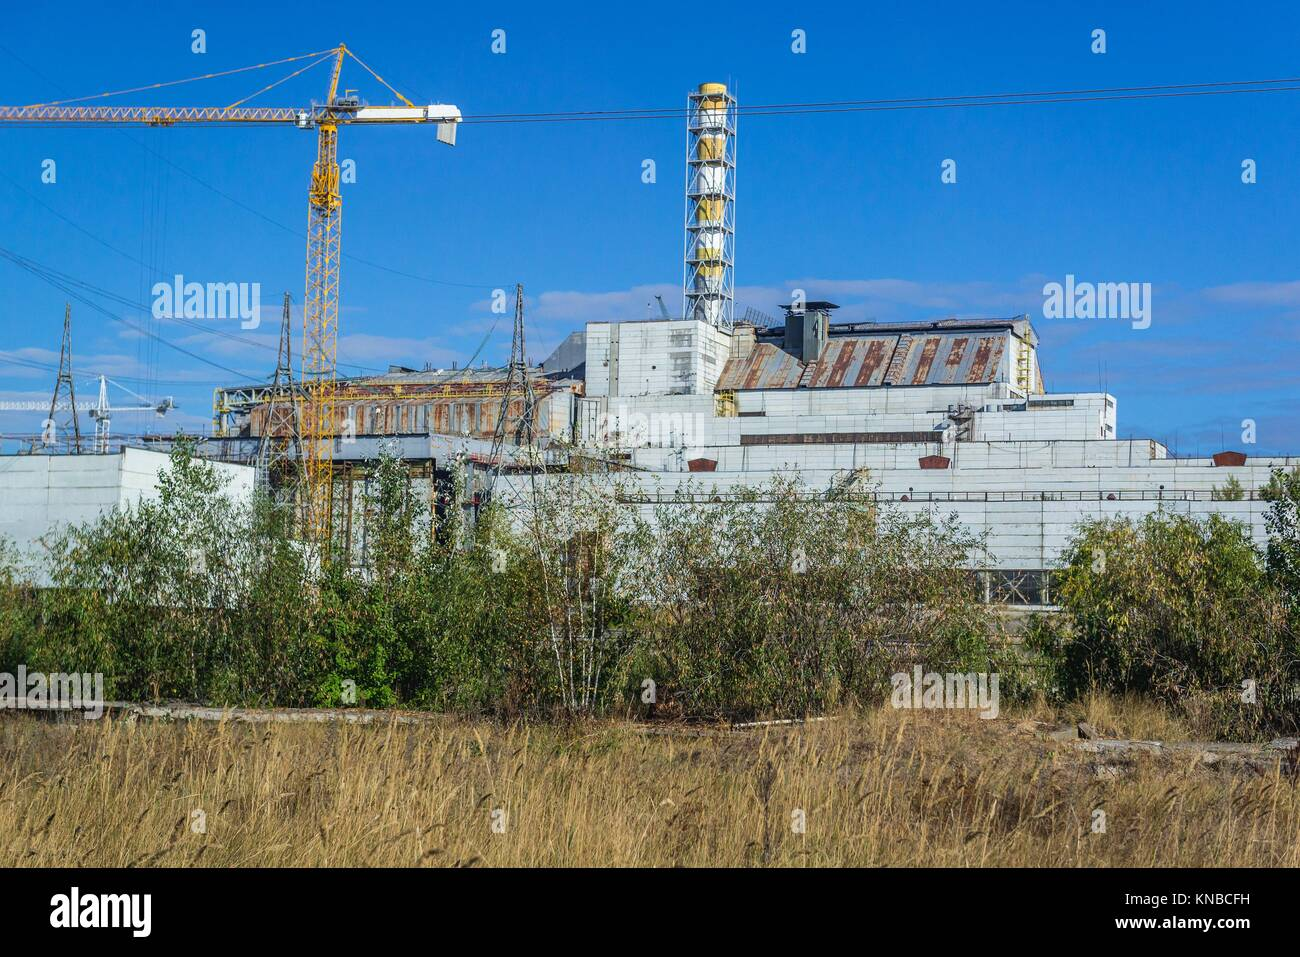 Reactor No 4 of Chernobyl Nuclear Power Plant in Zone of Alienation, 30 km radius exclusion area around the nuclear - Stock Image